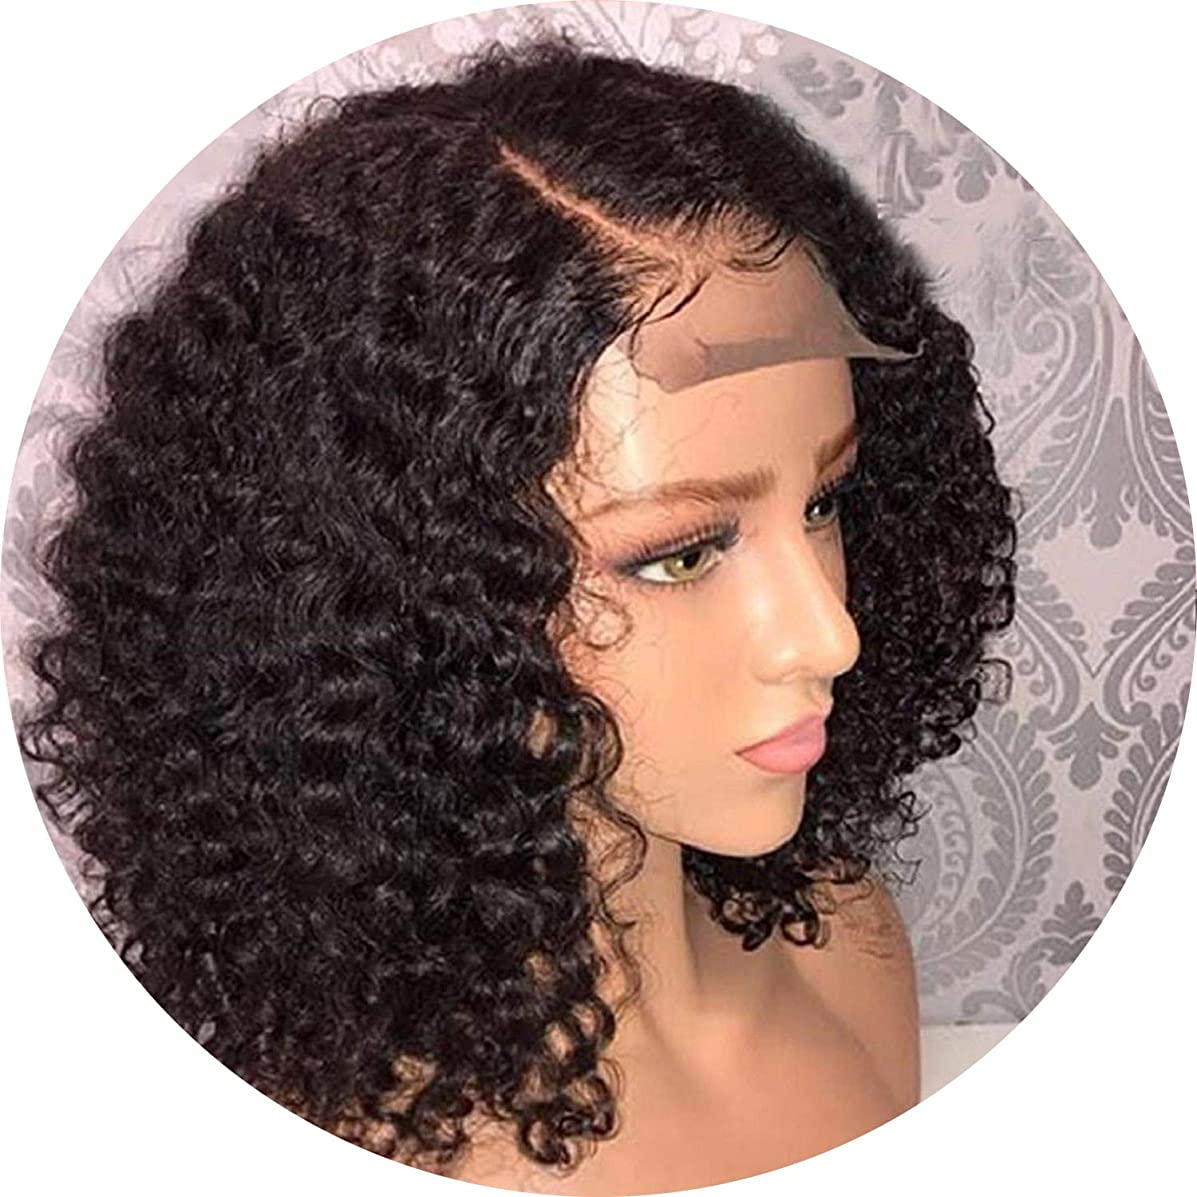 Brazilian Jerry Curl Wig Curly Lace Front Human Hair Wigs Lace Frontal Wig Short Bob Pre Plucked With Baby Hair Lace Closure Wig,12Inches,4X4 Closure Wigs